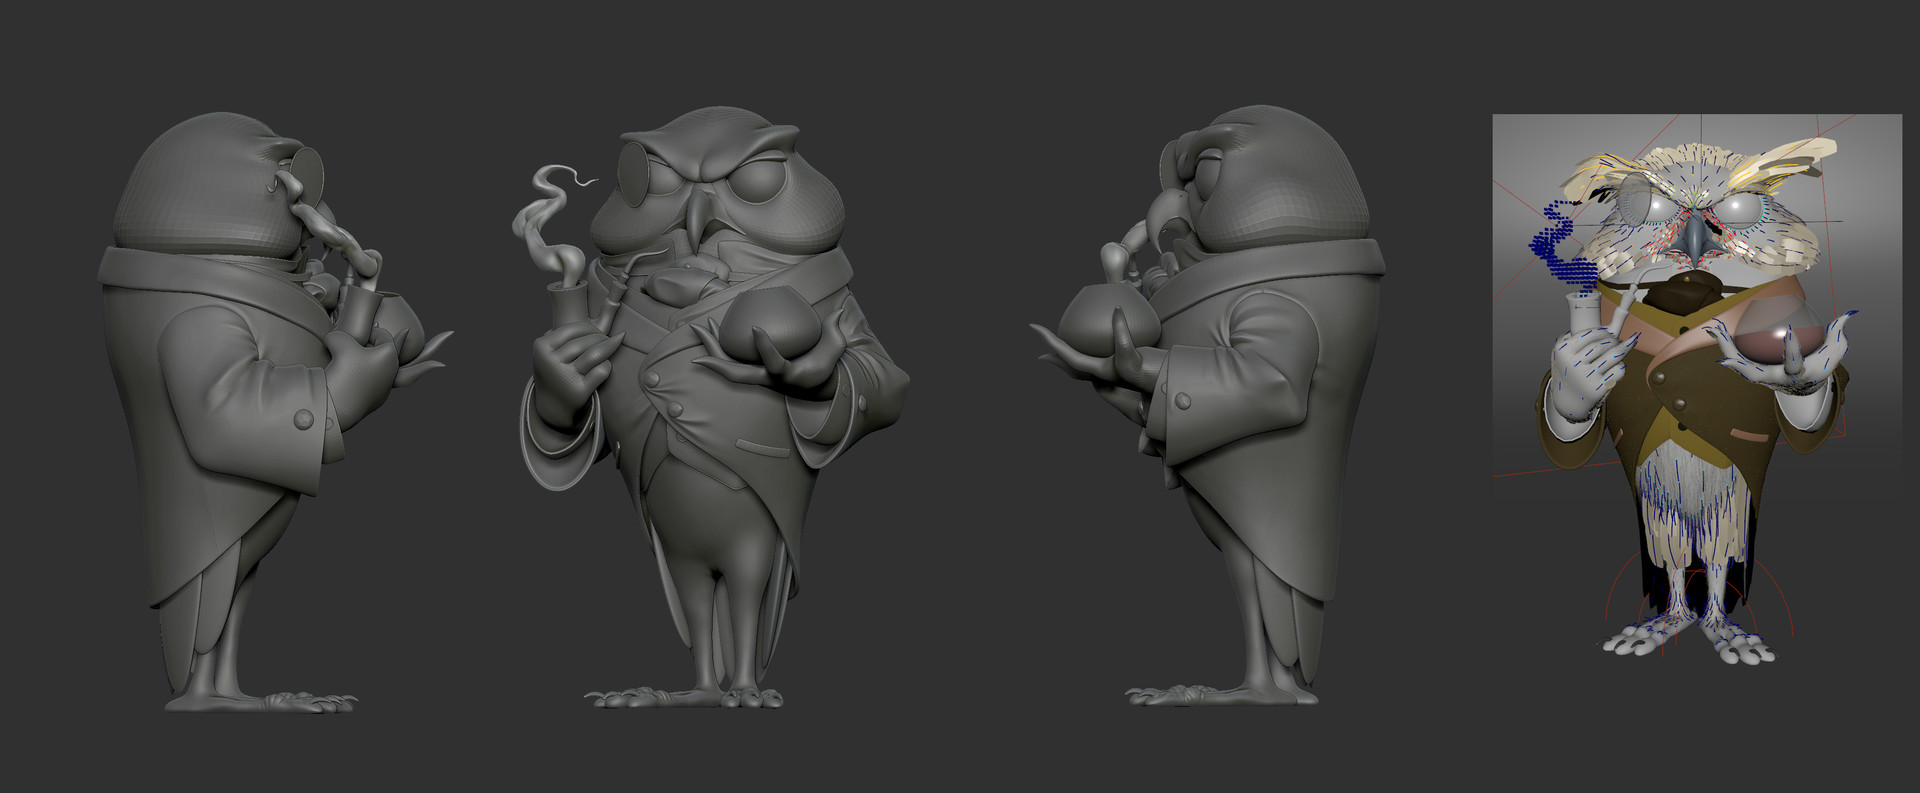 zbrush shots, and the yeti grooms/feathers.